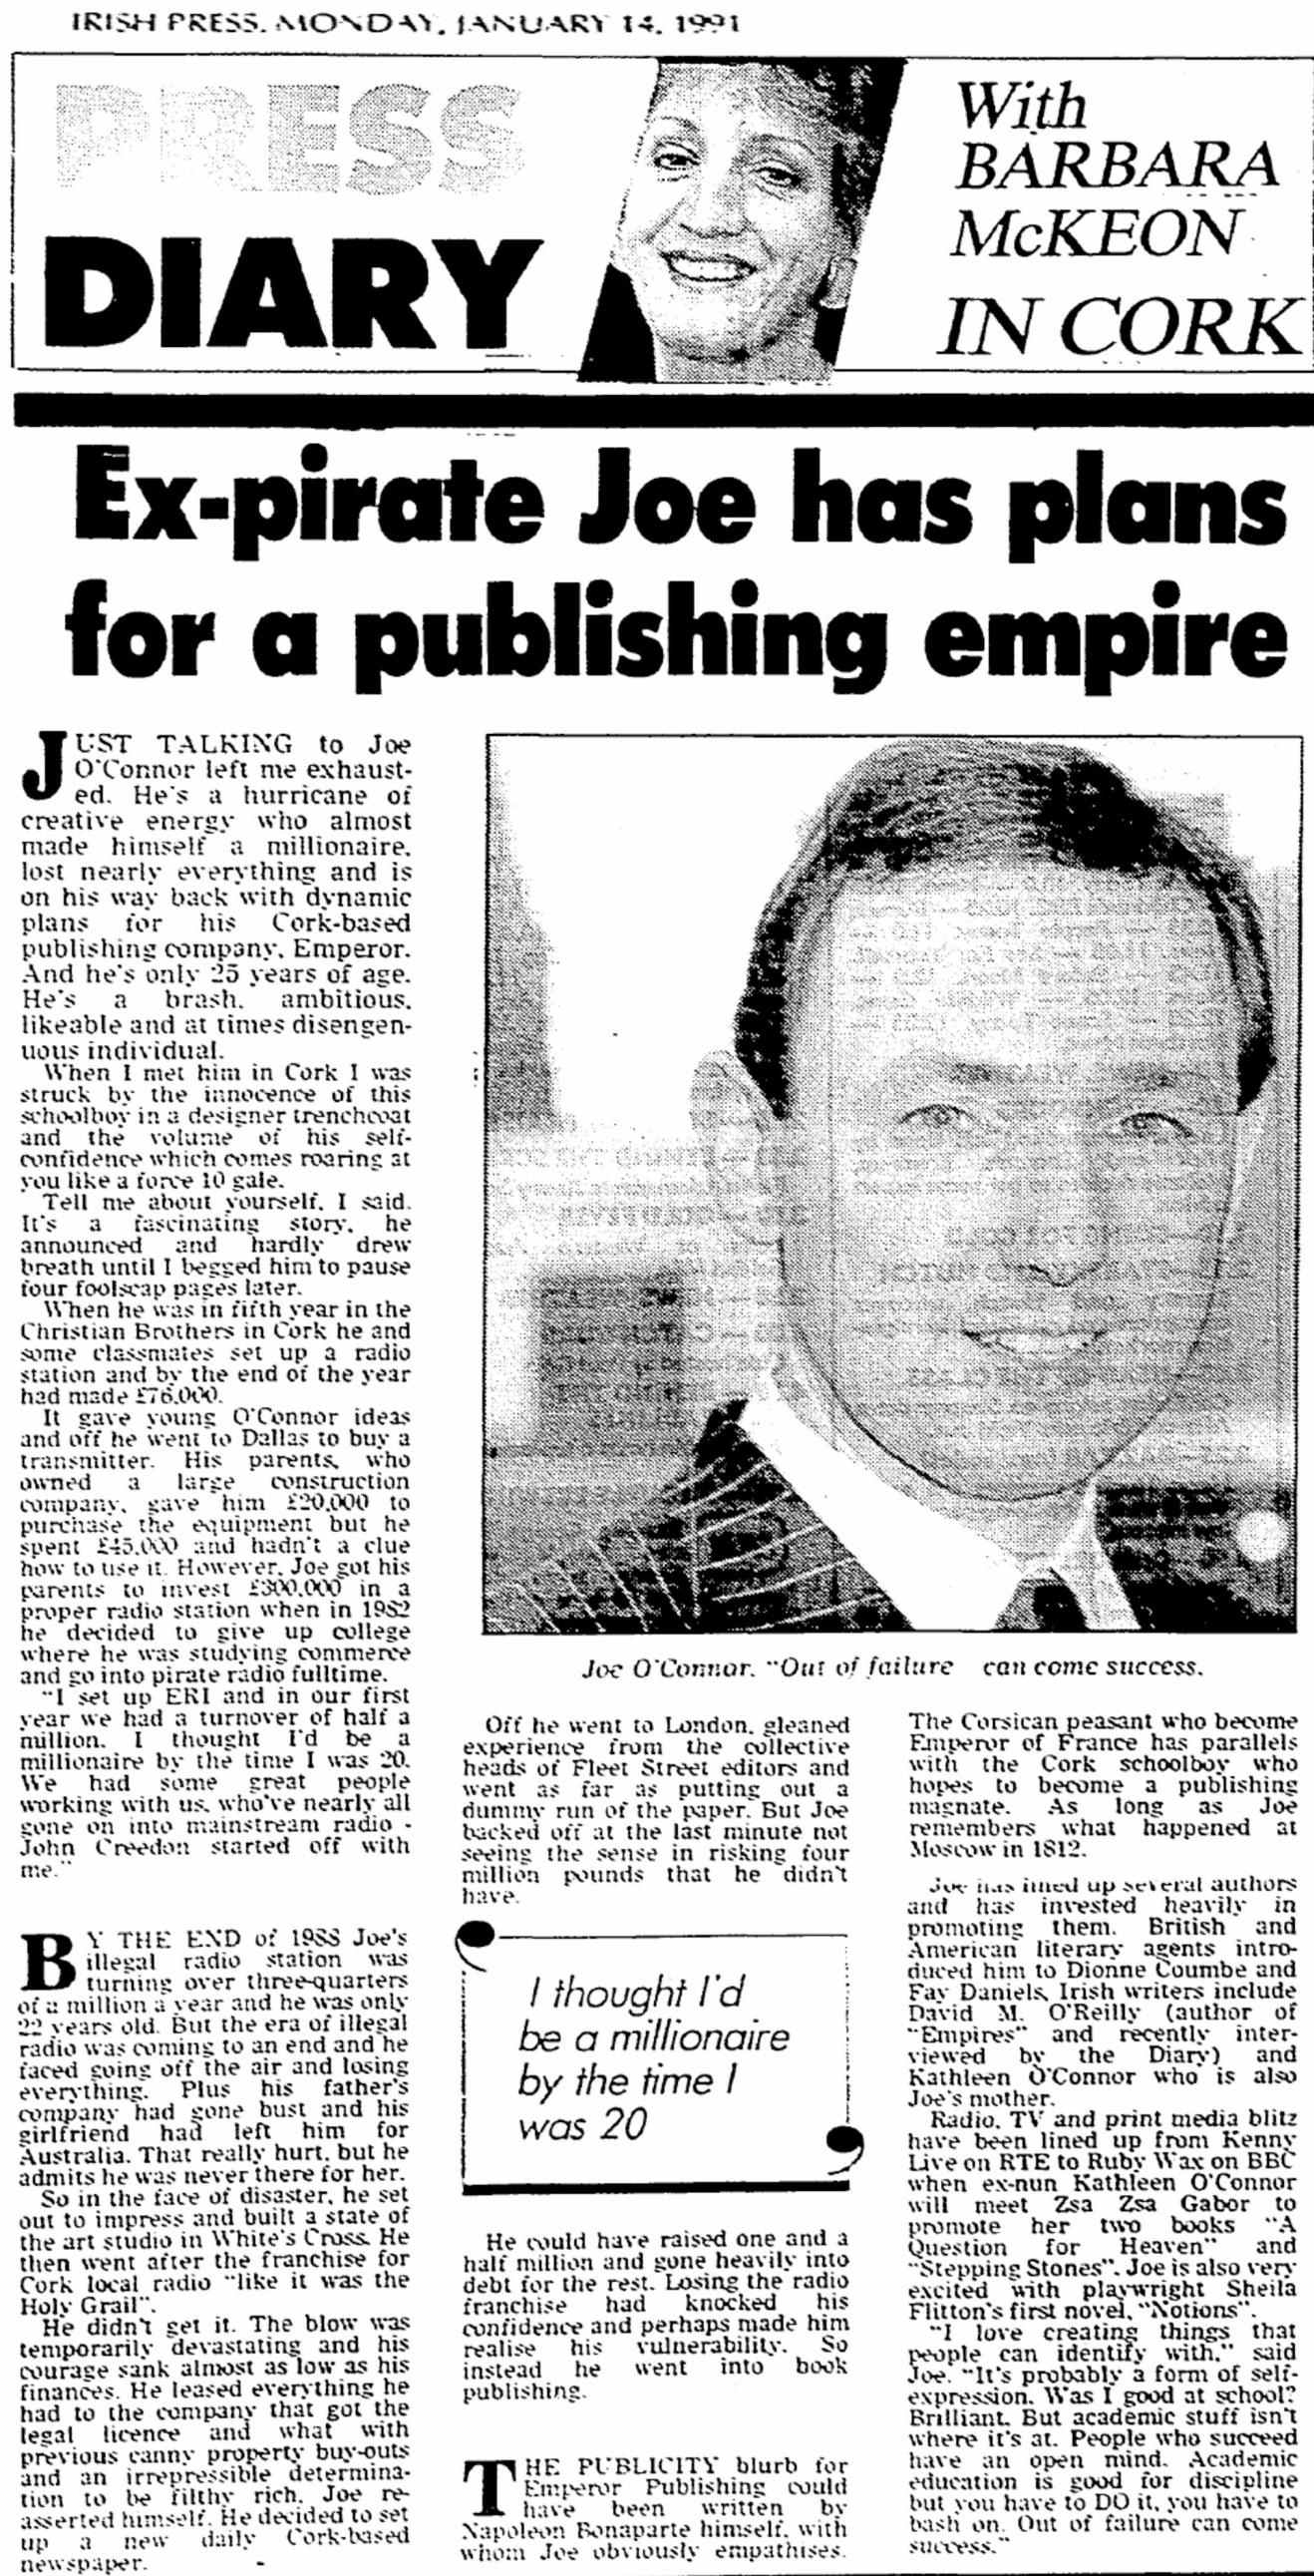 Ex-pirate Joe has plans for publishing empire was a headline from The Irish Press dated January 14th 1991.